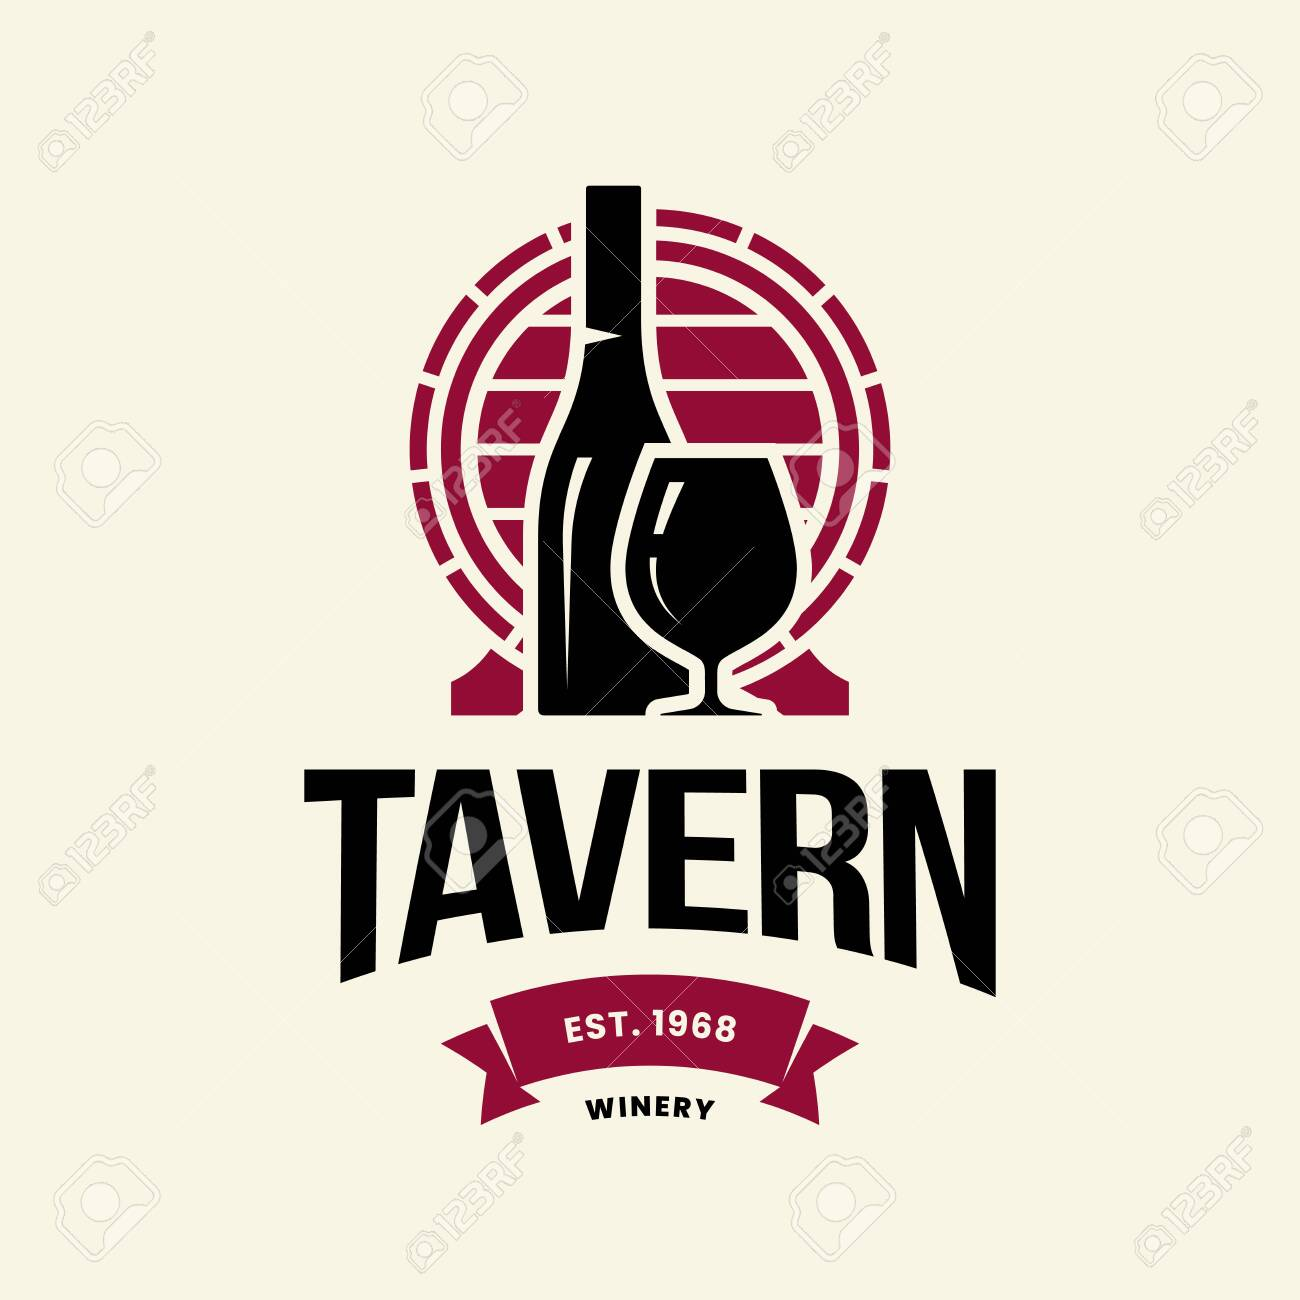 Modern wine vector logo sign for tavern, restaurant, house, shop, store, club and cellar isolated on light background. Premium quality vinery logotype illustration. Fashion brand badge design template. - 120438782